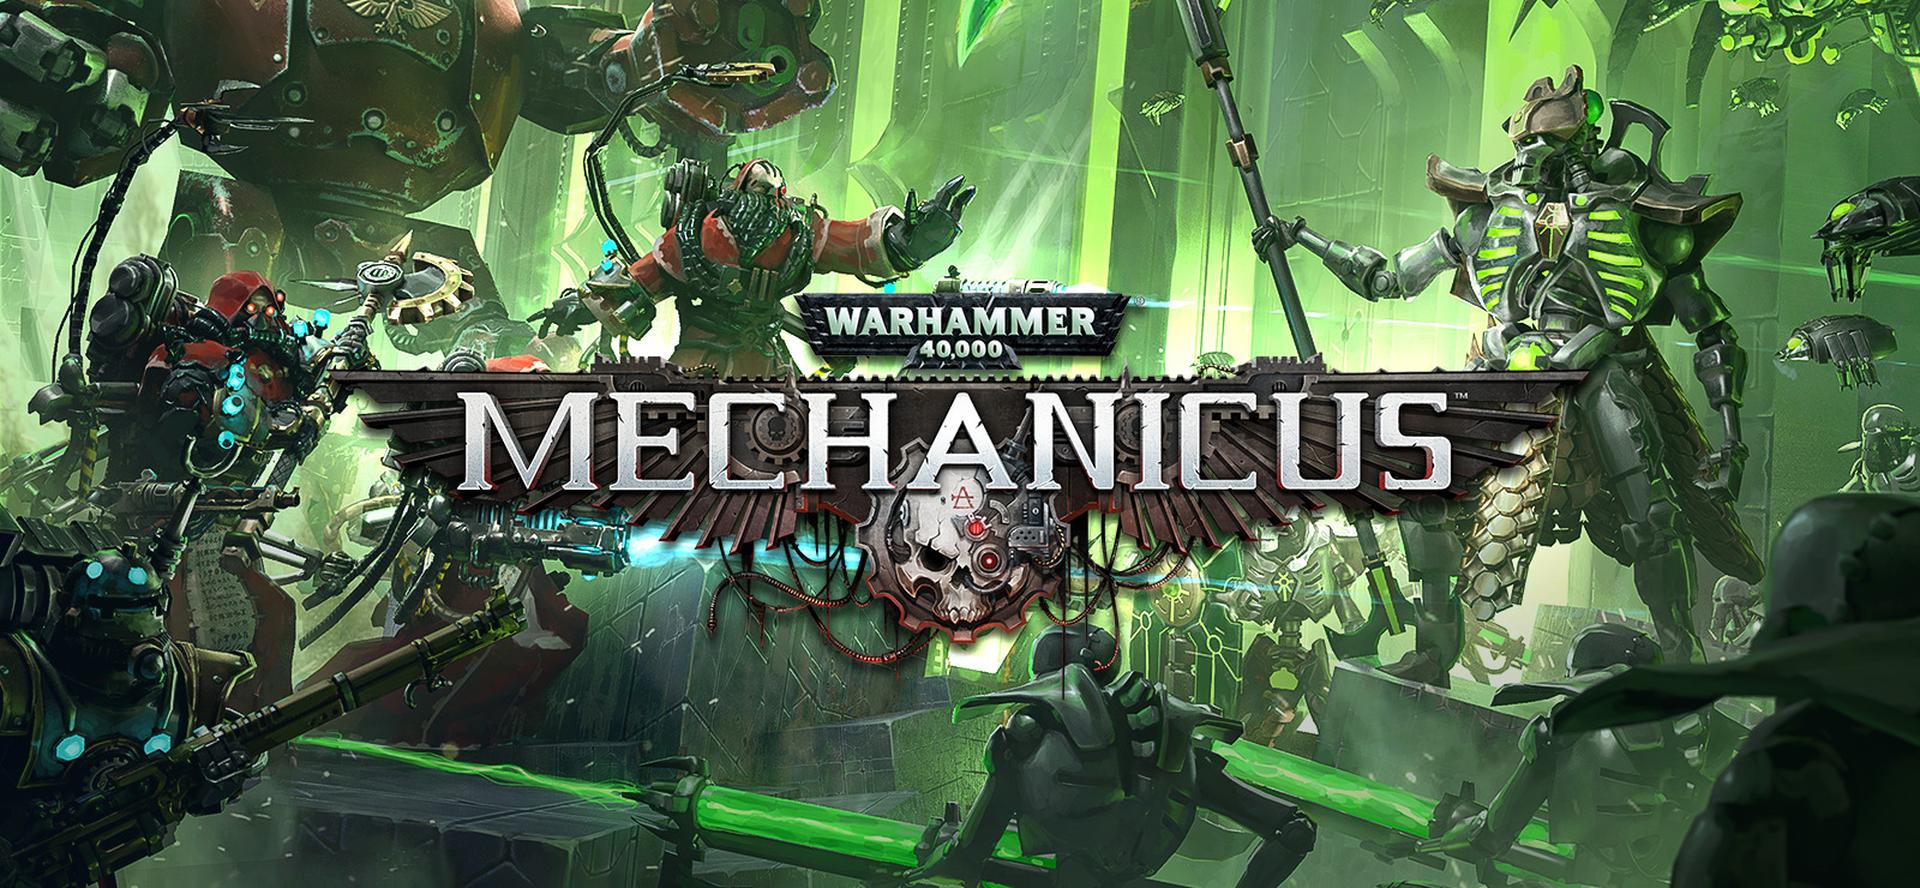 Warhammer 40,000: Mechanicus Video